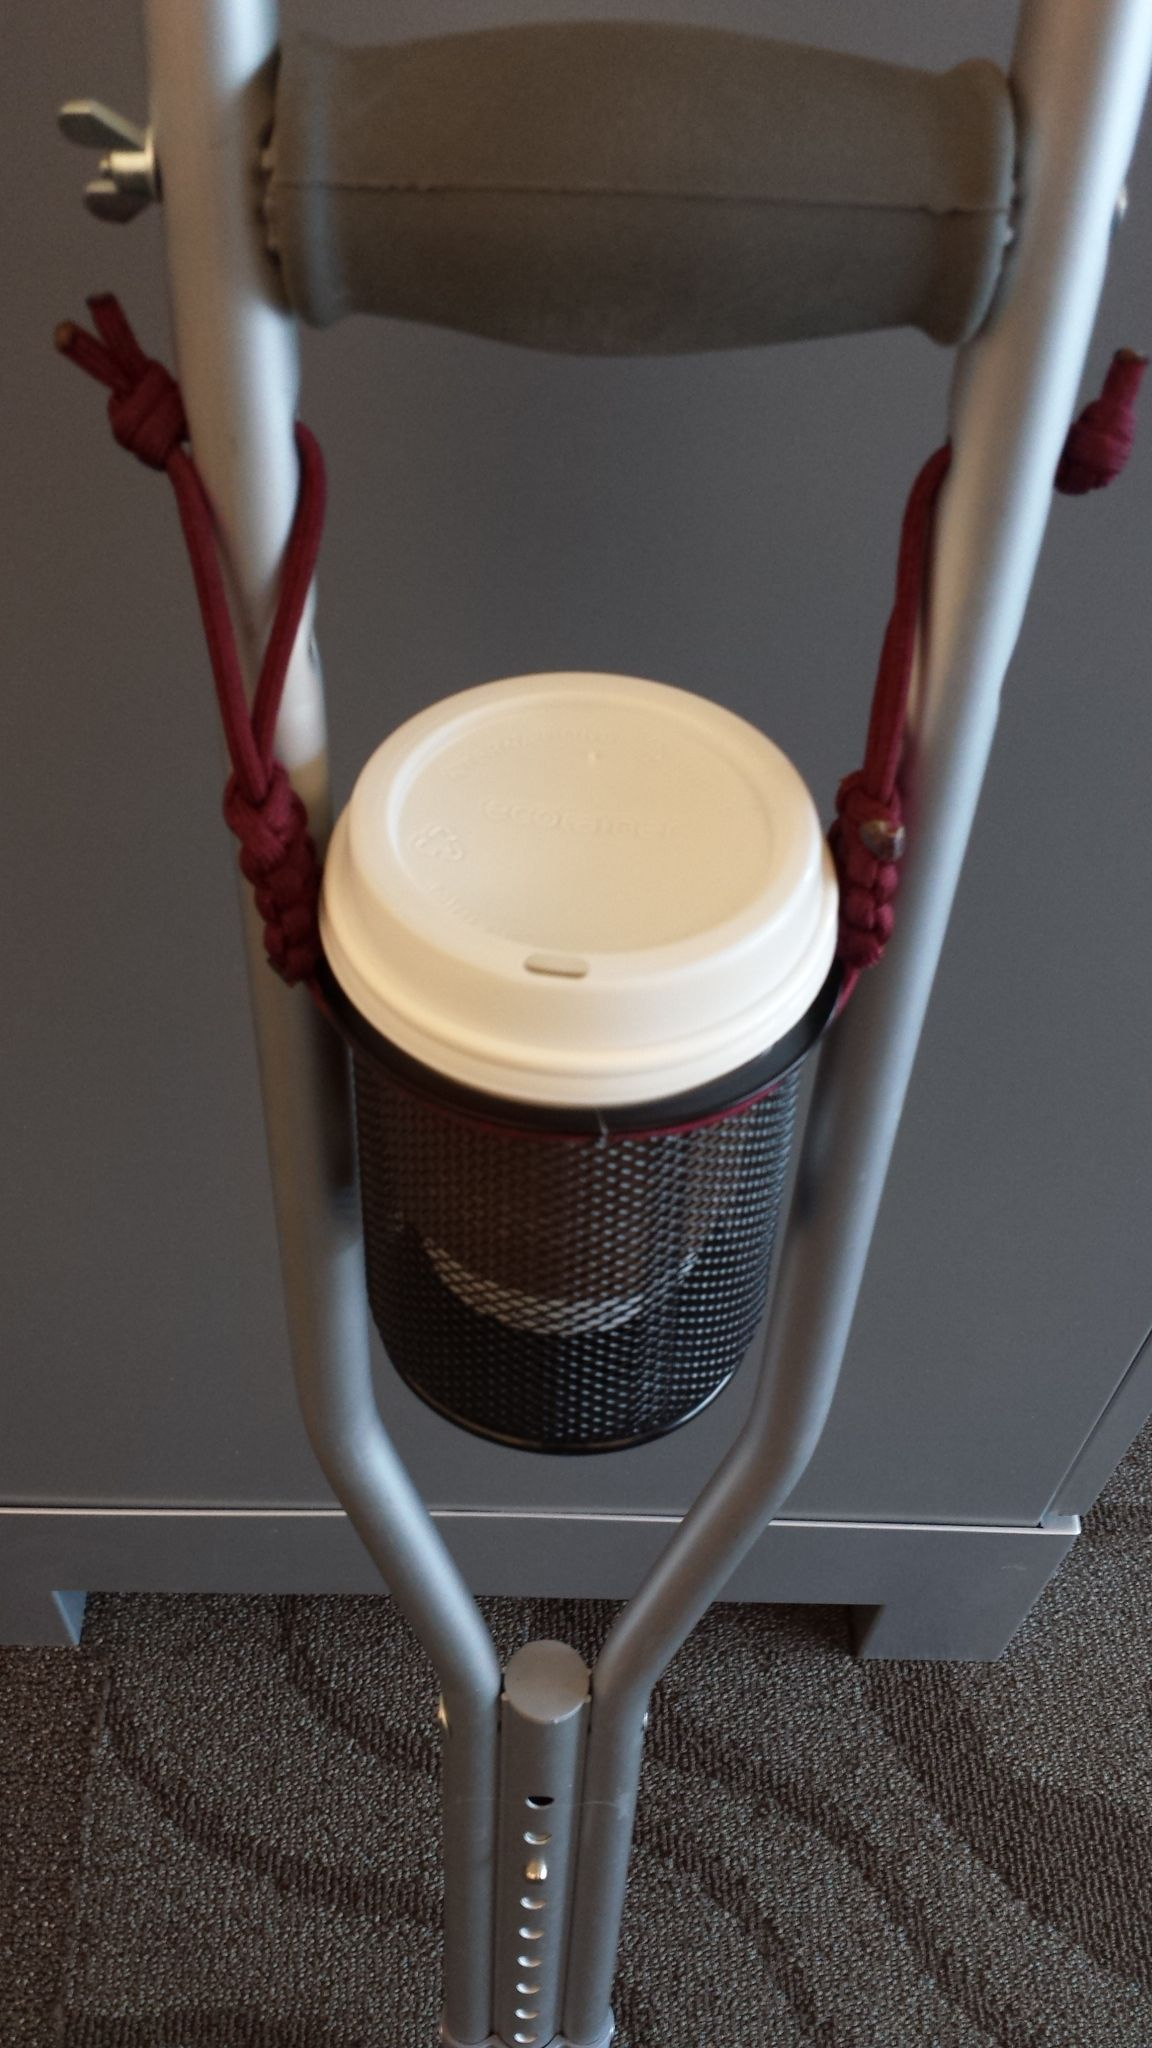 Picture of Cup Holder Made From Paracord and an Office Pen Cup